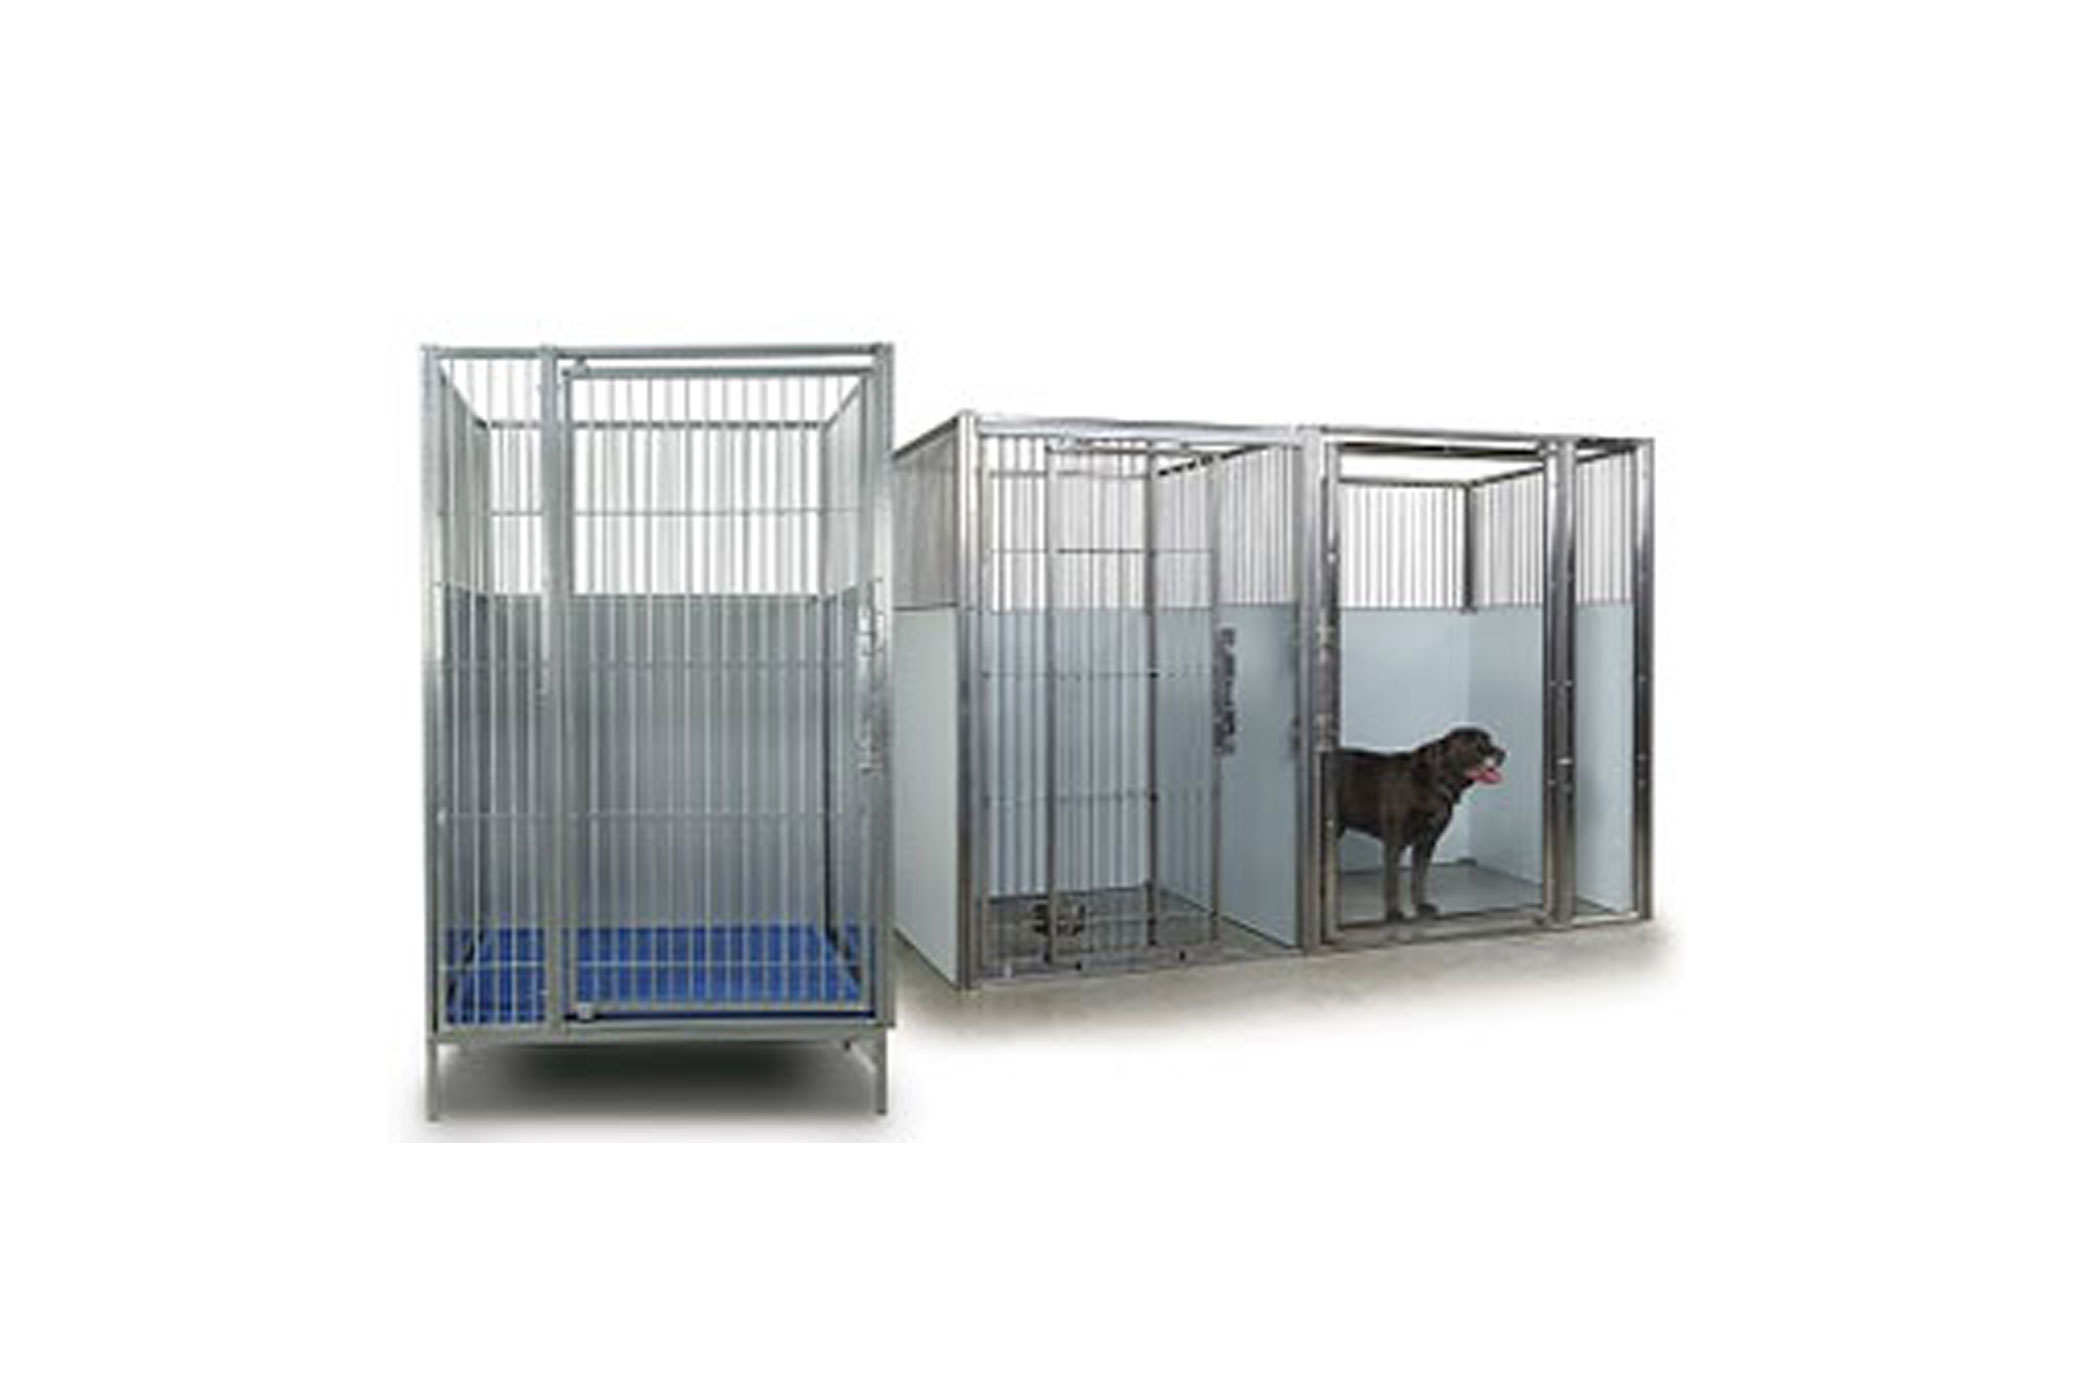 kennel-interlocking-system-modular-design (1)